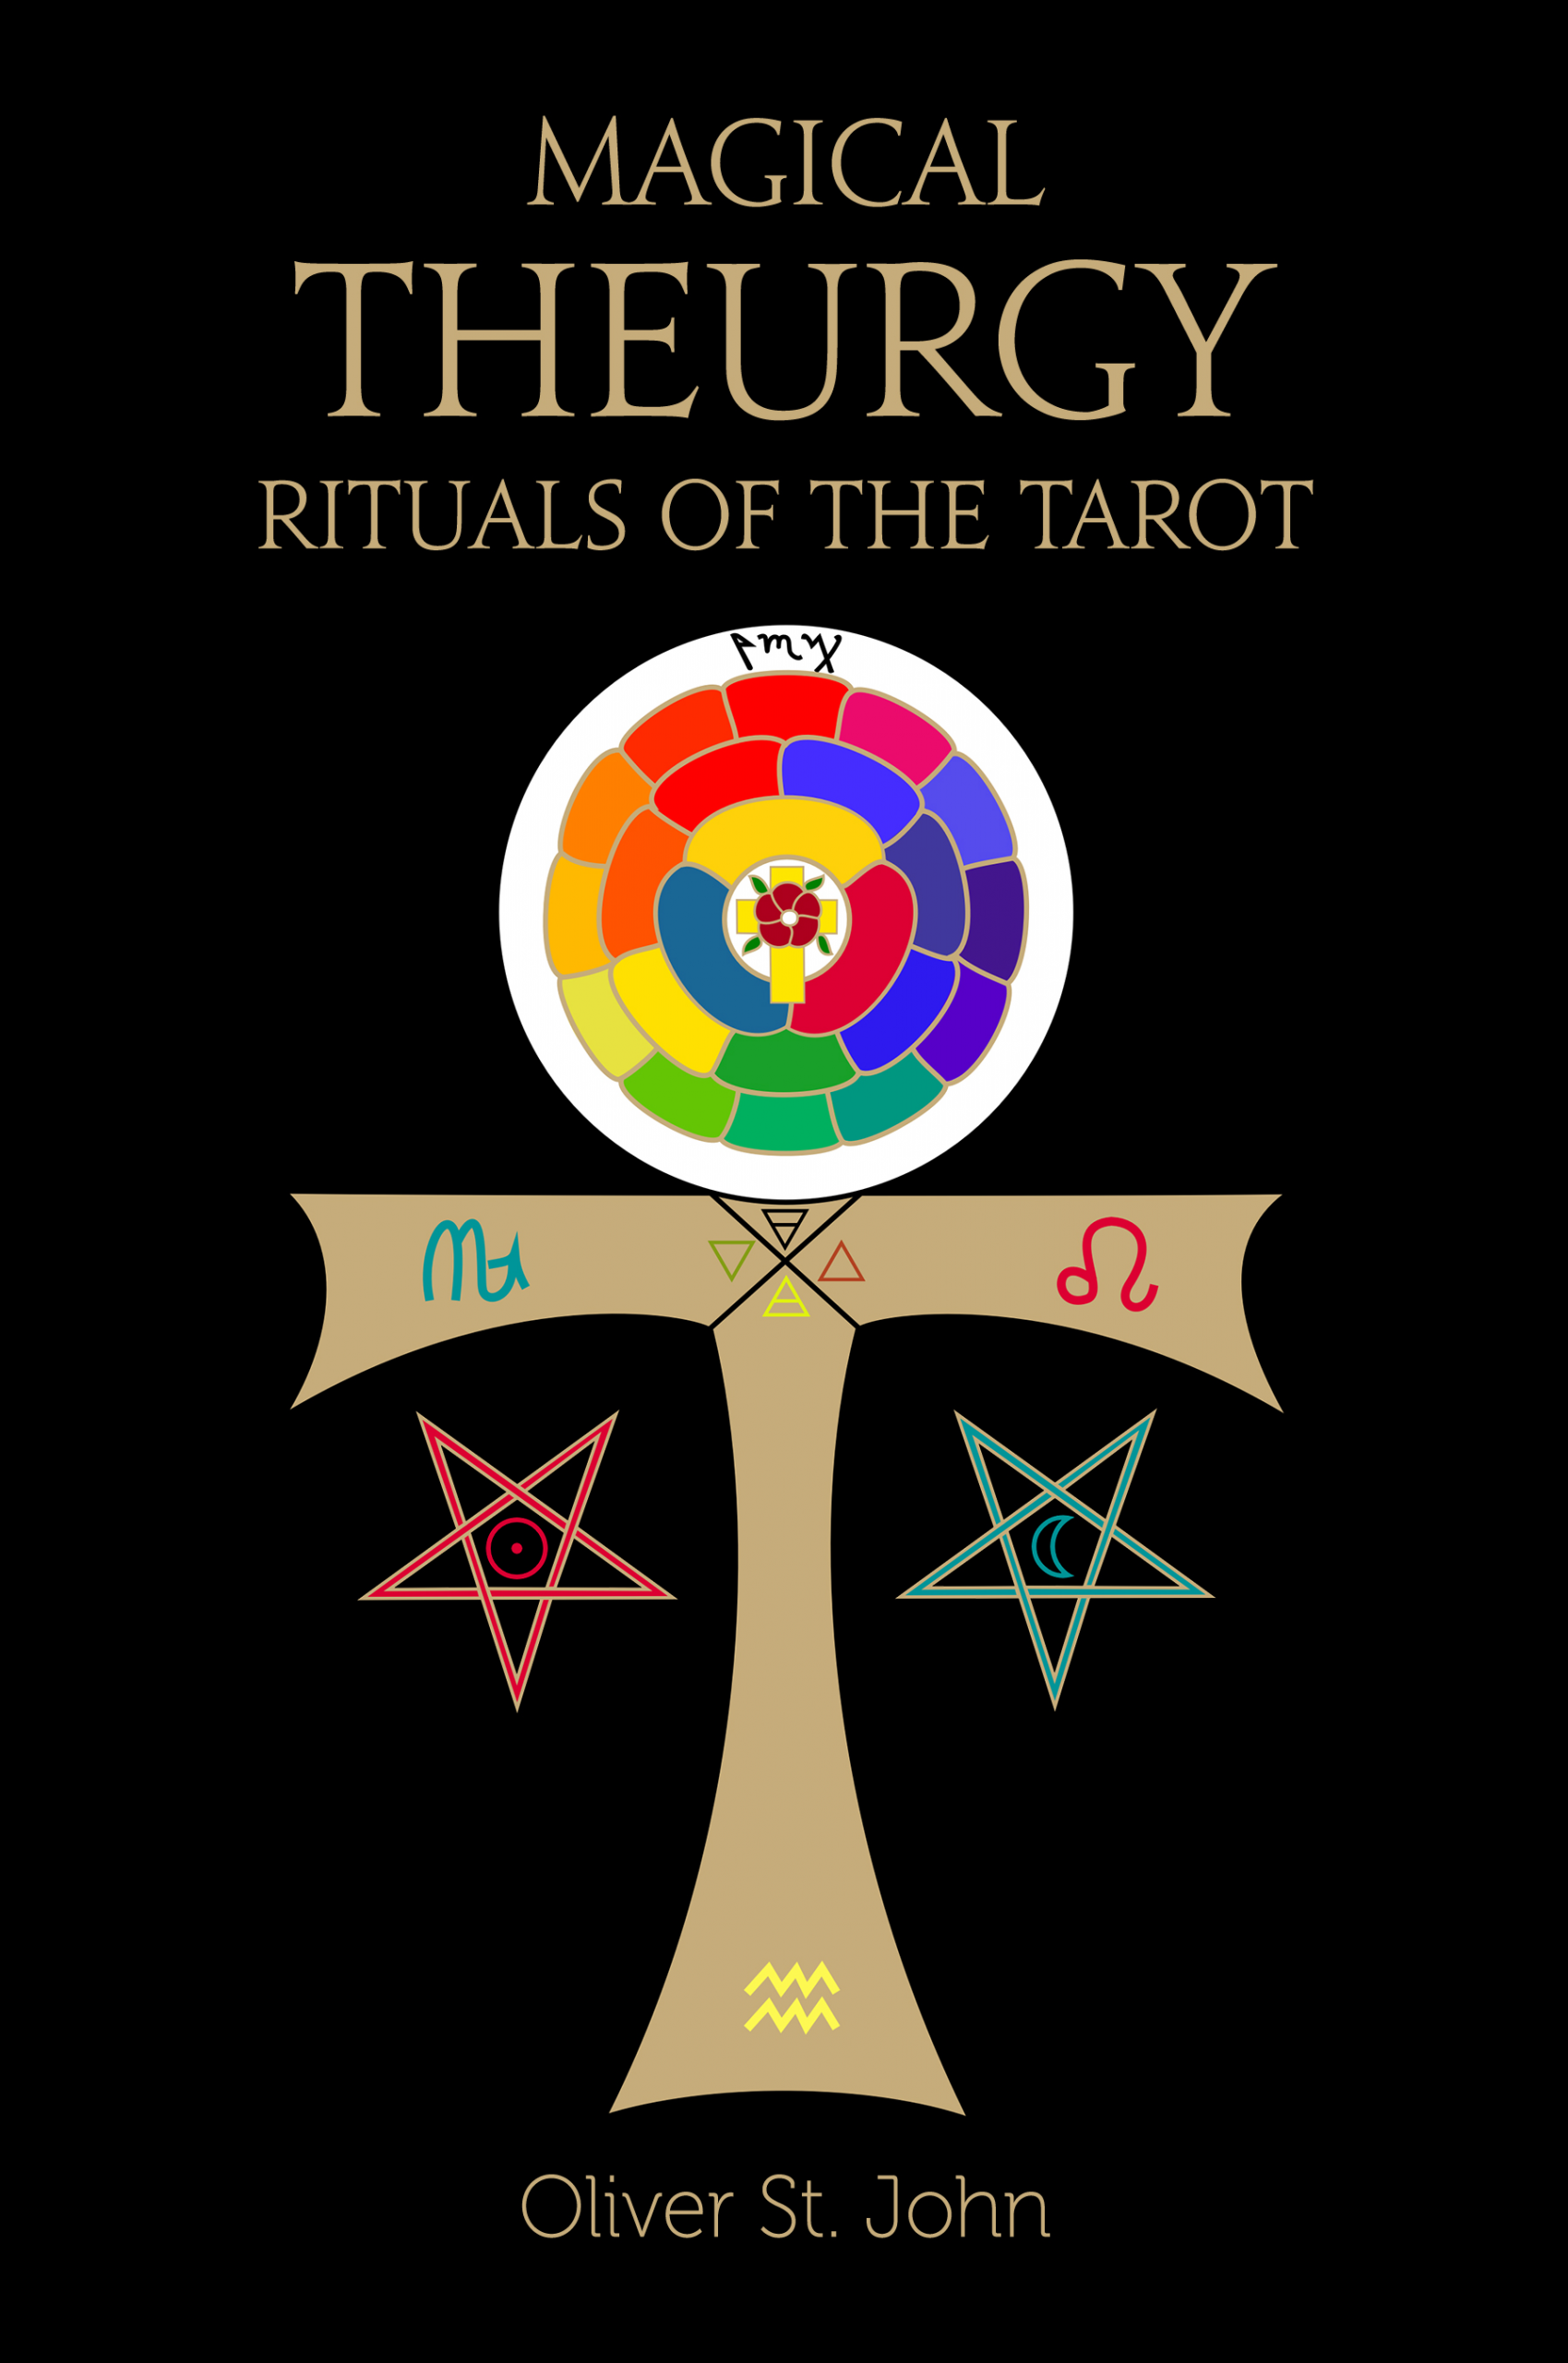 Ordo Astri Books: Magical Theurgy—Rituals of the Tarot (hardbound)